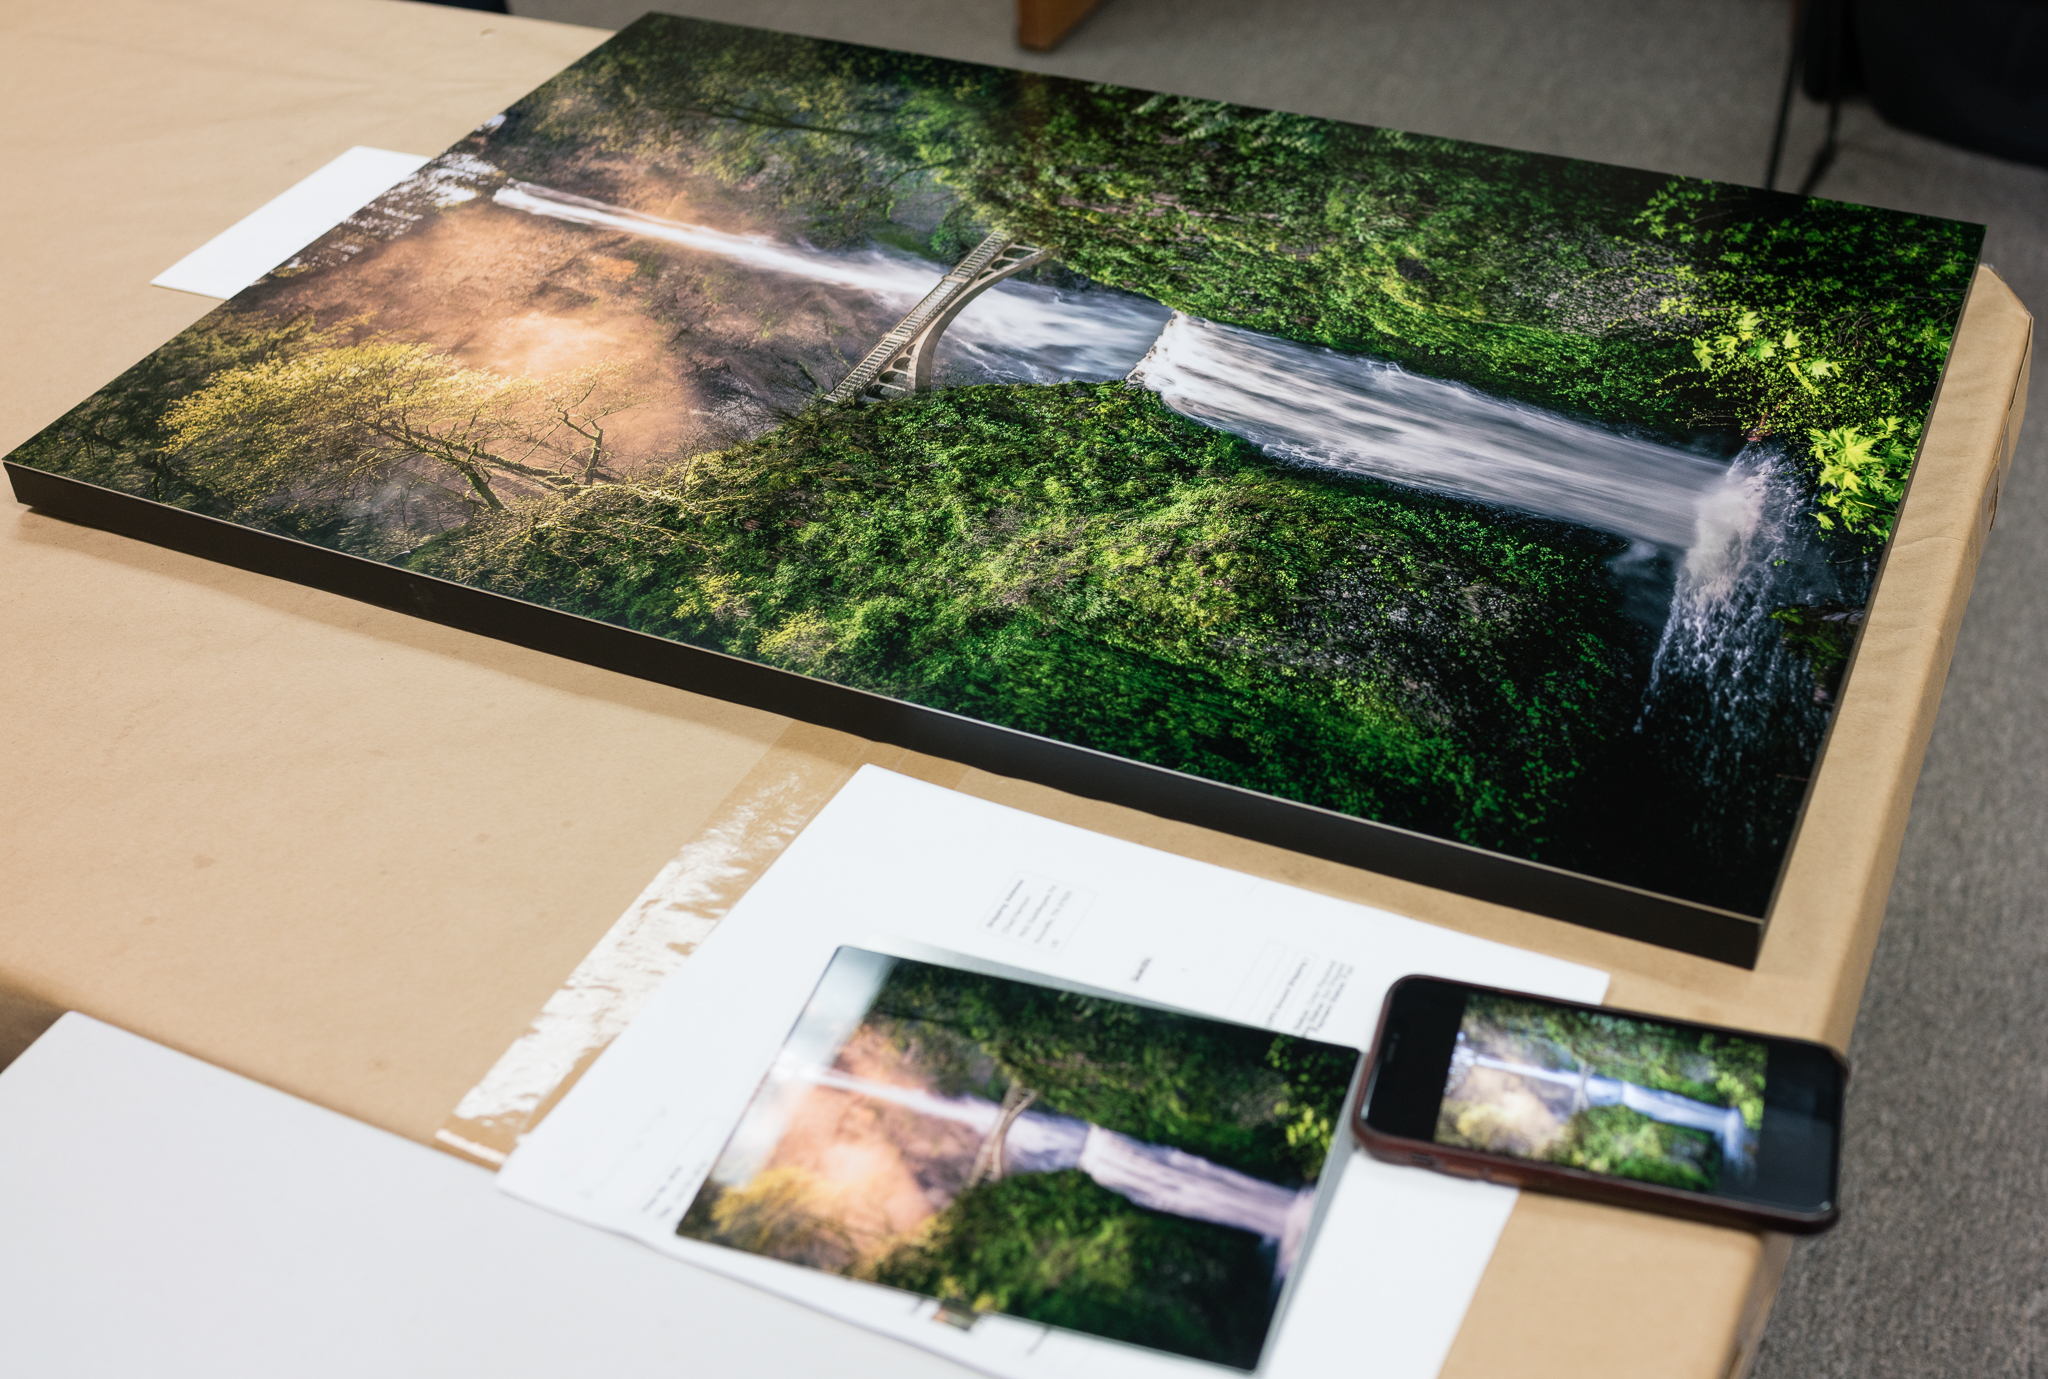 "Flush Mount 30x20"" Metal print ready to ship. Shown alongside the 5x7""test print and an iPhone X for scale"